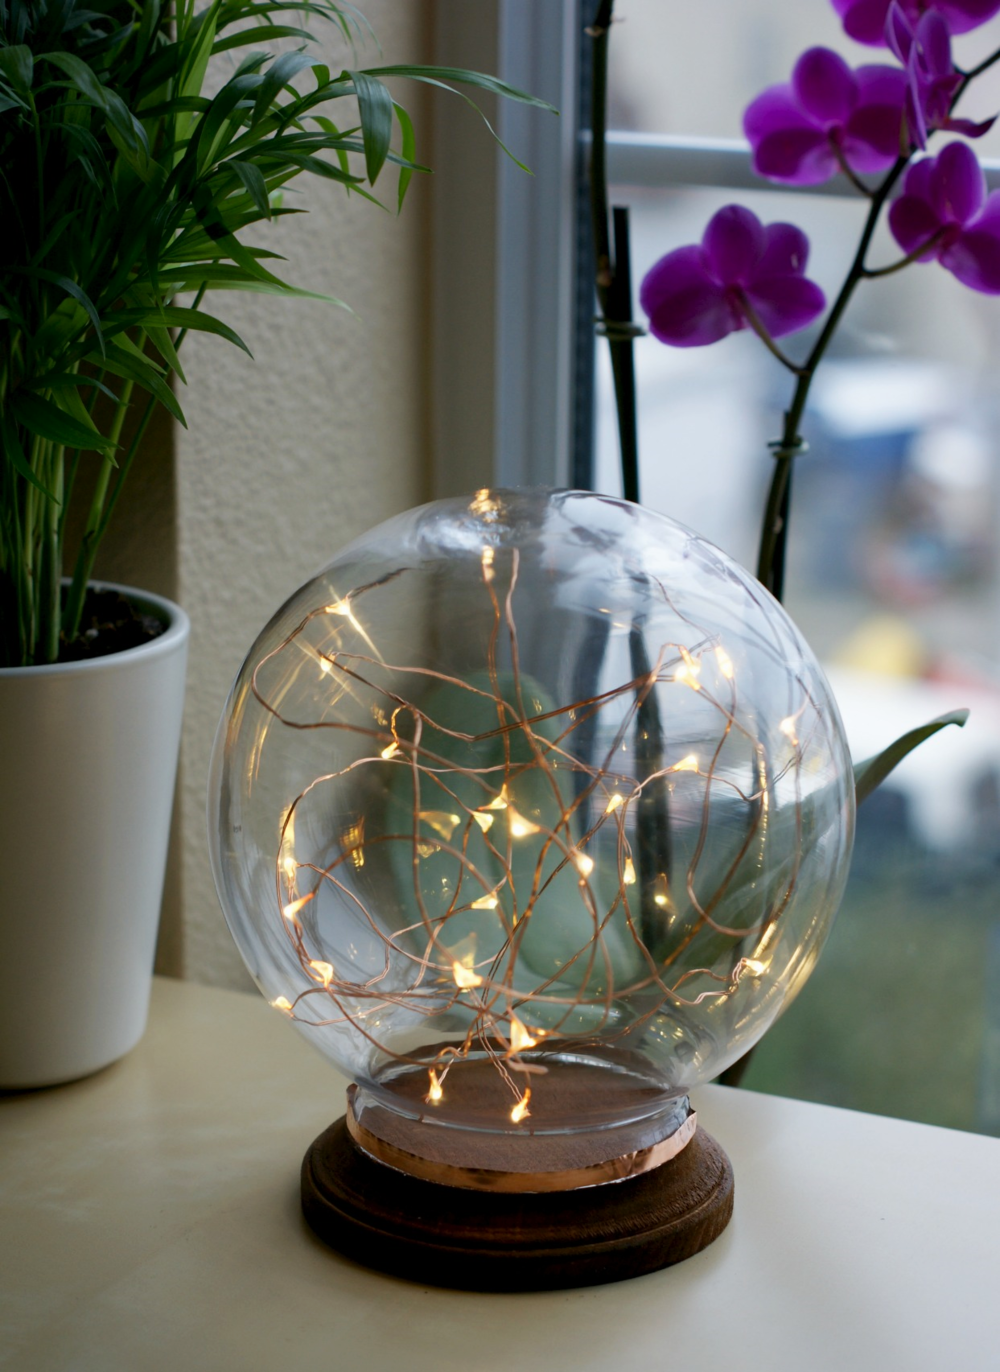 DIY illuminated copper globe inspired by Mid Century Modern designs